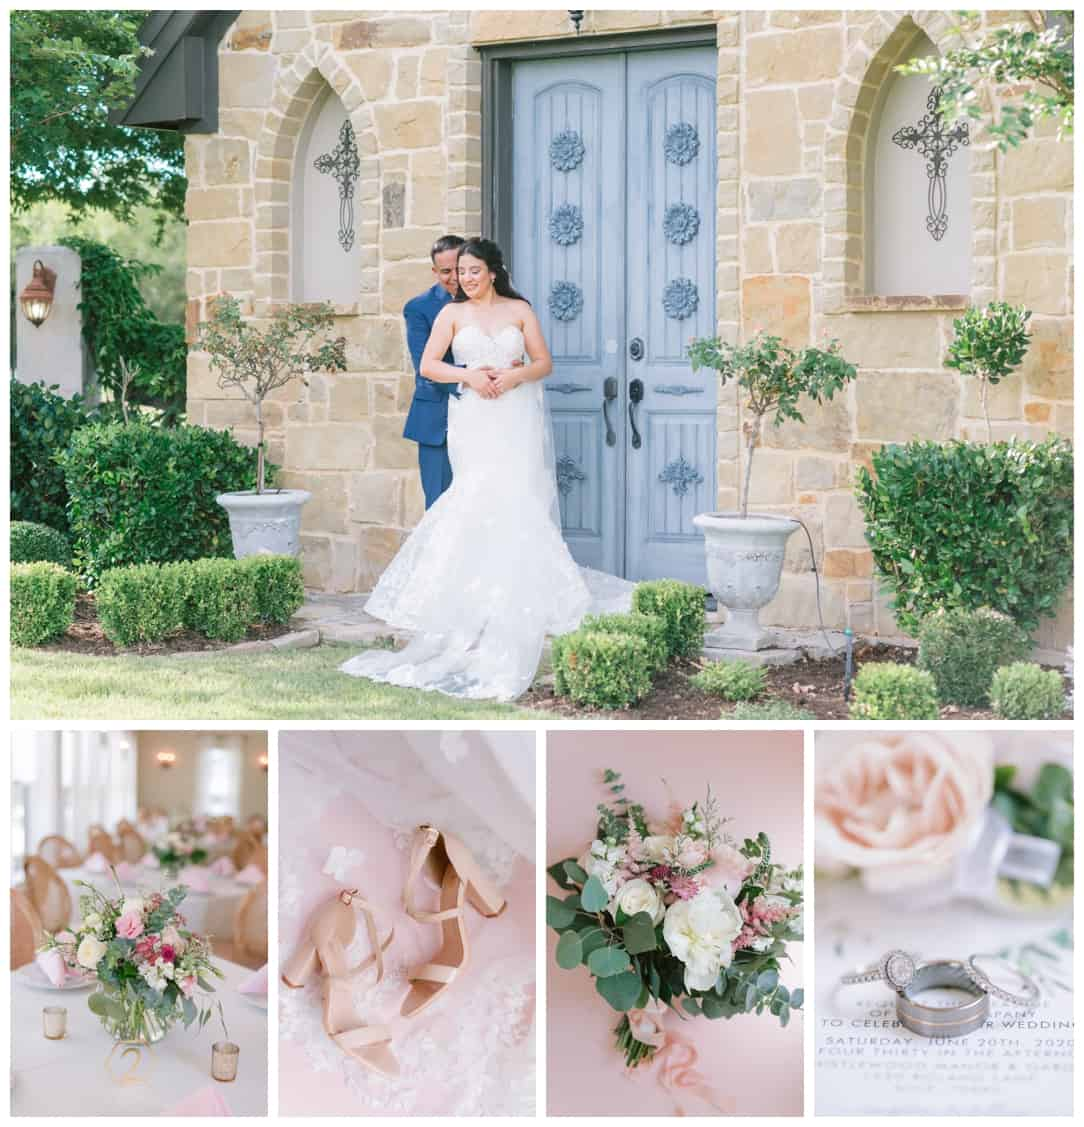 Just Married Couple at Thistlewood manor & gardens wedding